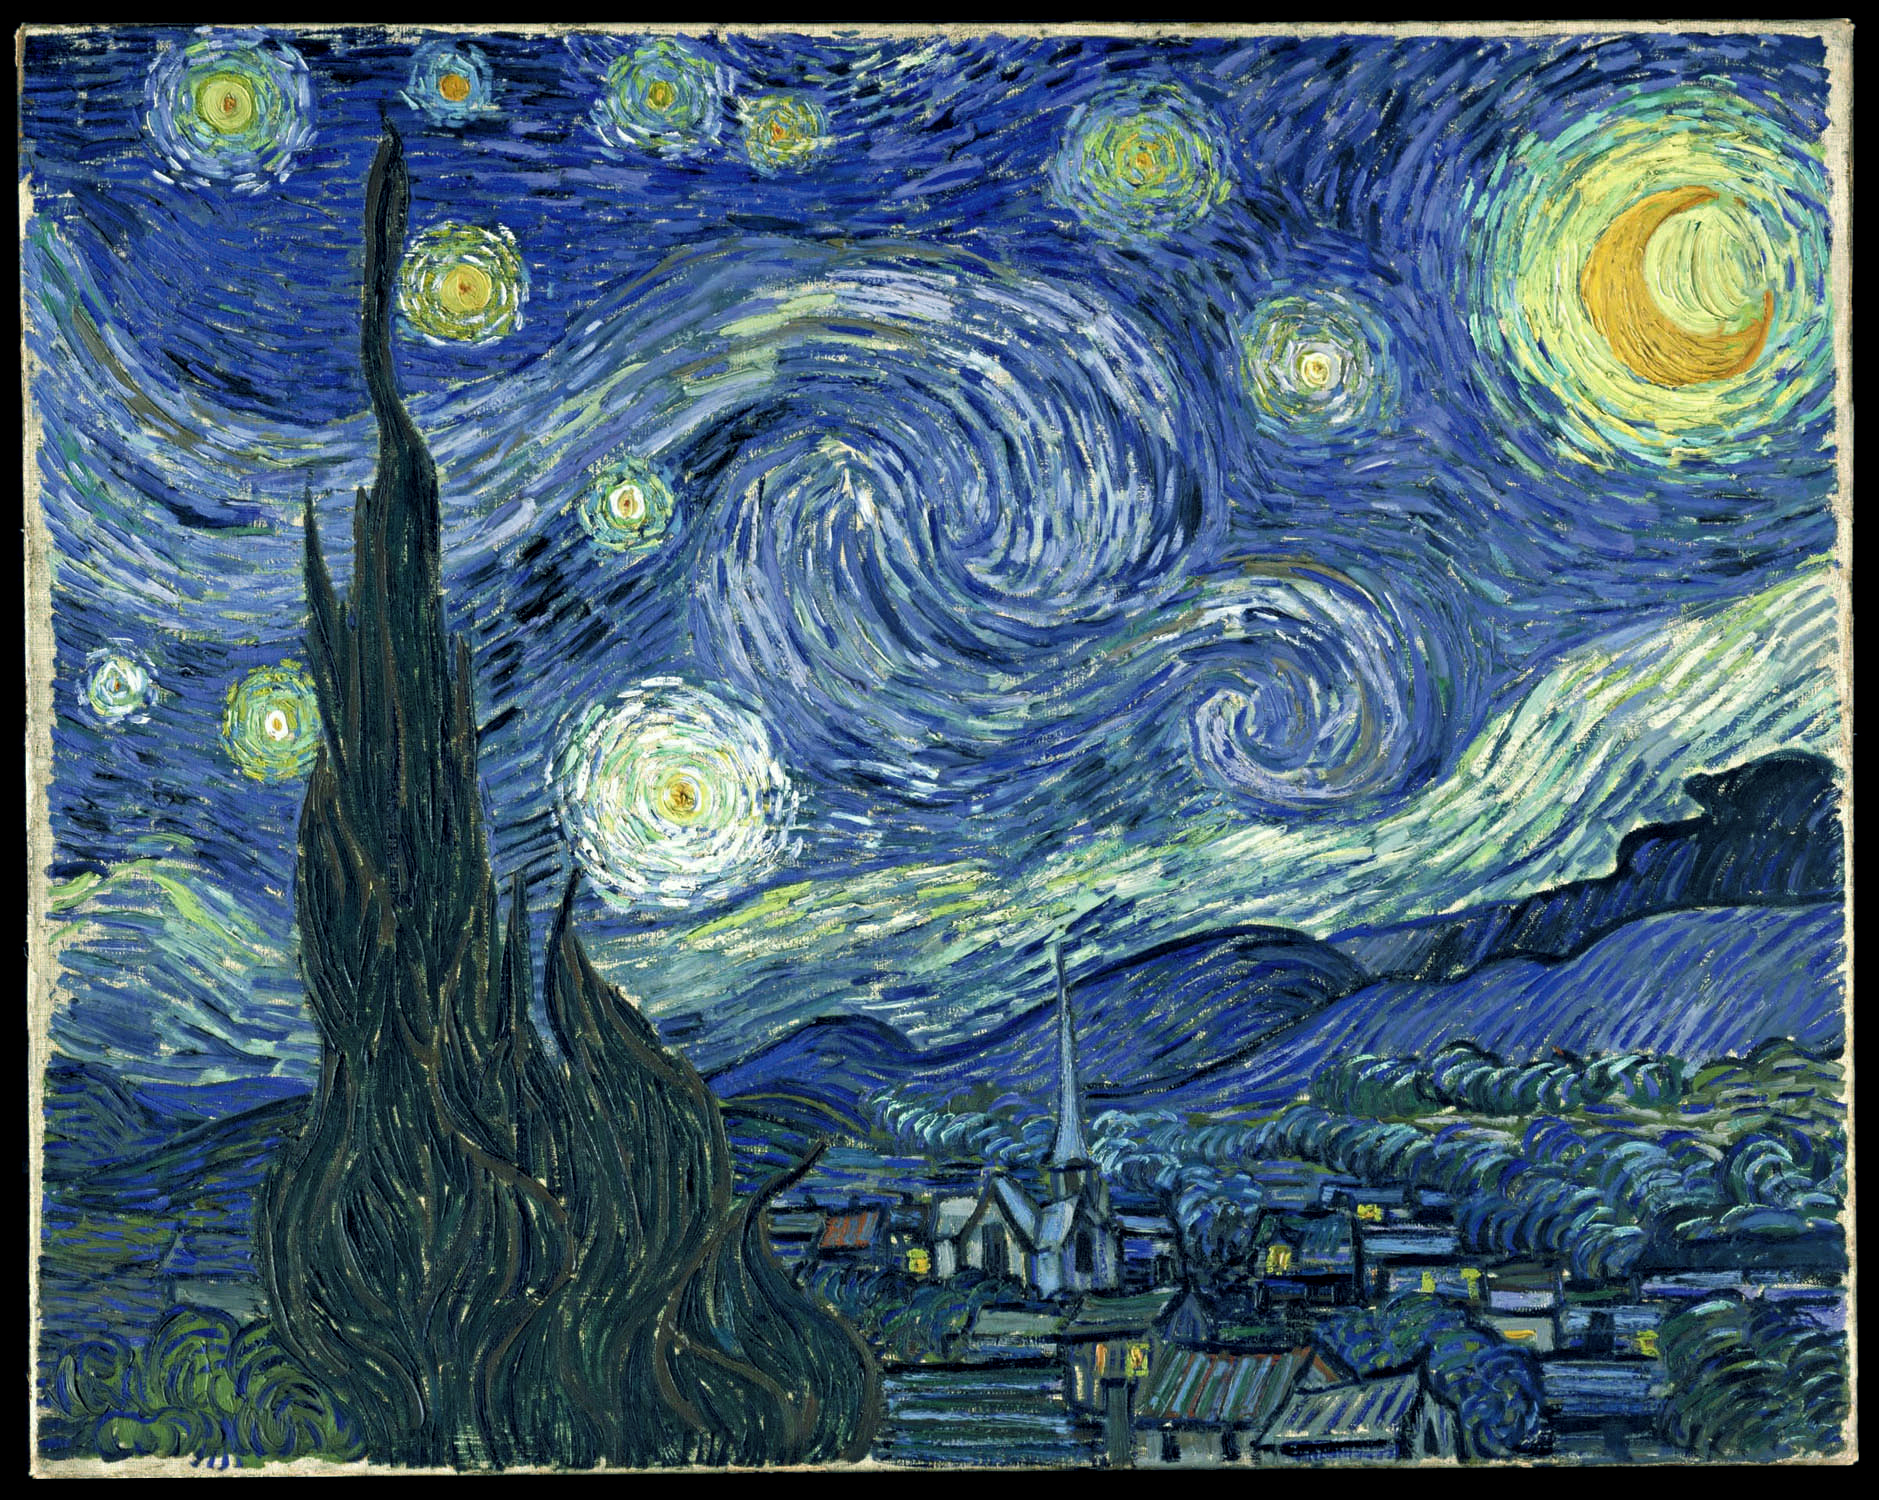 https://i0.wp.com/upload.wikimedia.org/wikipedia/commons/6/66/VanGogh-starry_night_ballance1.jpg